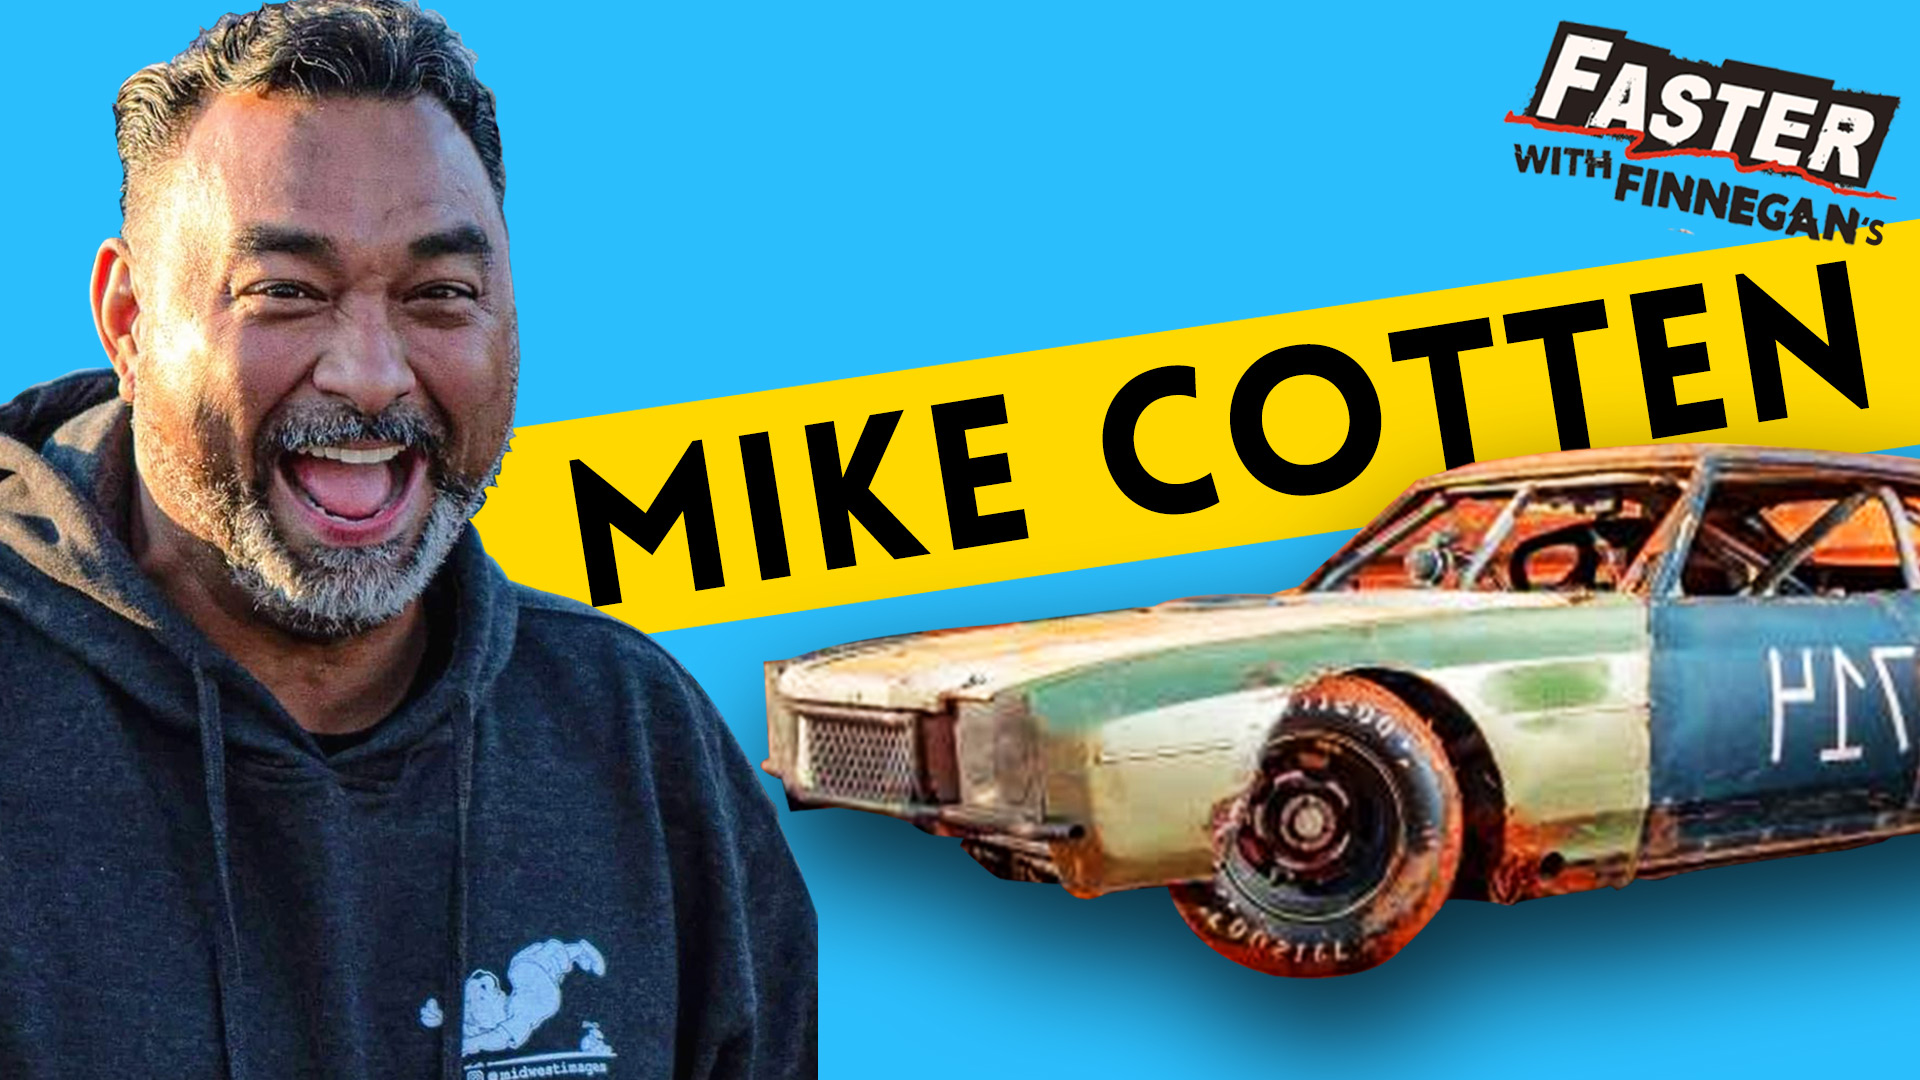 Mike Cotten takes us behind the scenes of MotorTrend's Faster with Finnegan